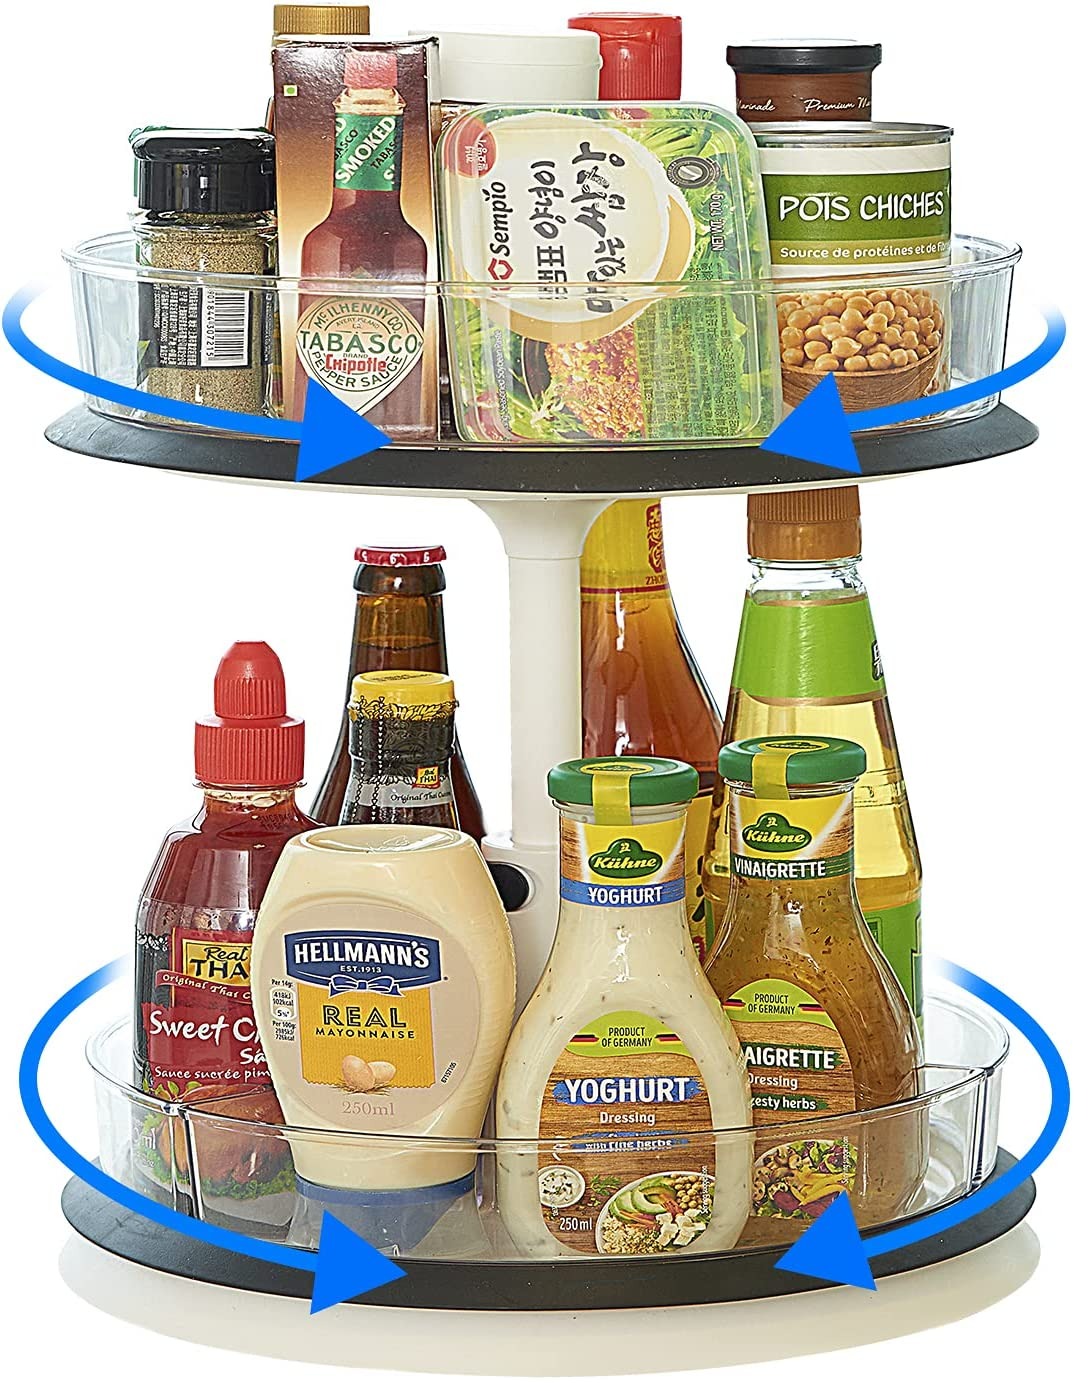 2-Tier Lazy Susan Turntable Organizer with 4 Removable Clear Storage Bins, Height Adjustable Spice Rack for Table, Cabinet, Pantry, Kitchen Counter. Smooth Action, Easy Access